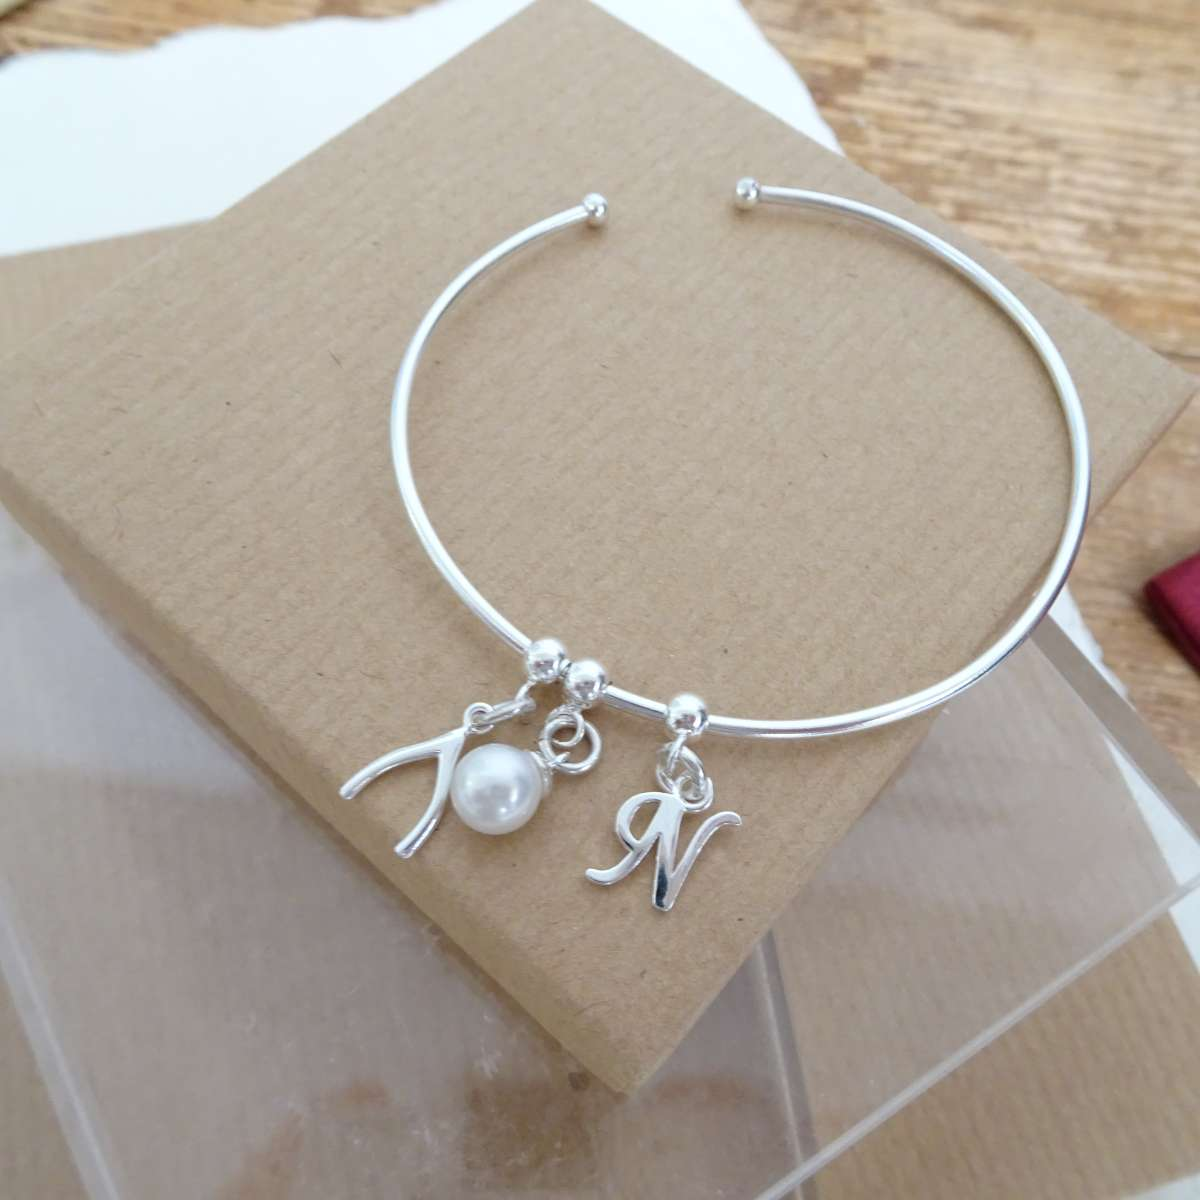 Alterative image for Sterling Silver Initial Letter & Pearl & Wishbone Adjustable Cuff Charm Bangle